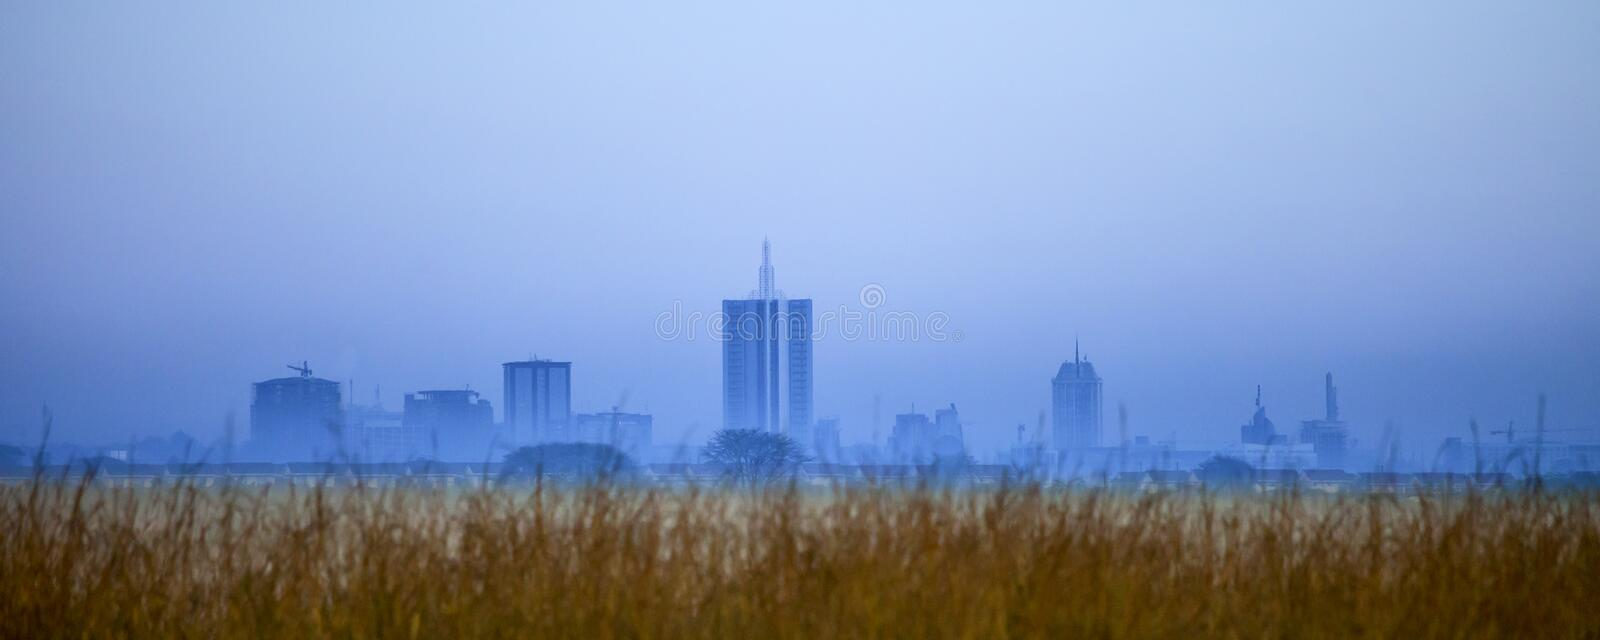 Skyline de Nairobi antes do alvorecer fotos de stock royalty free